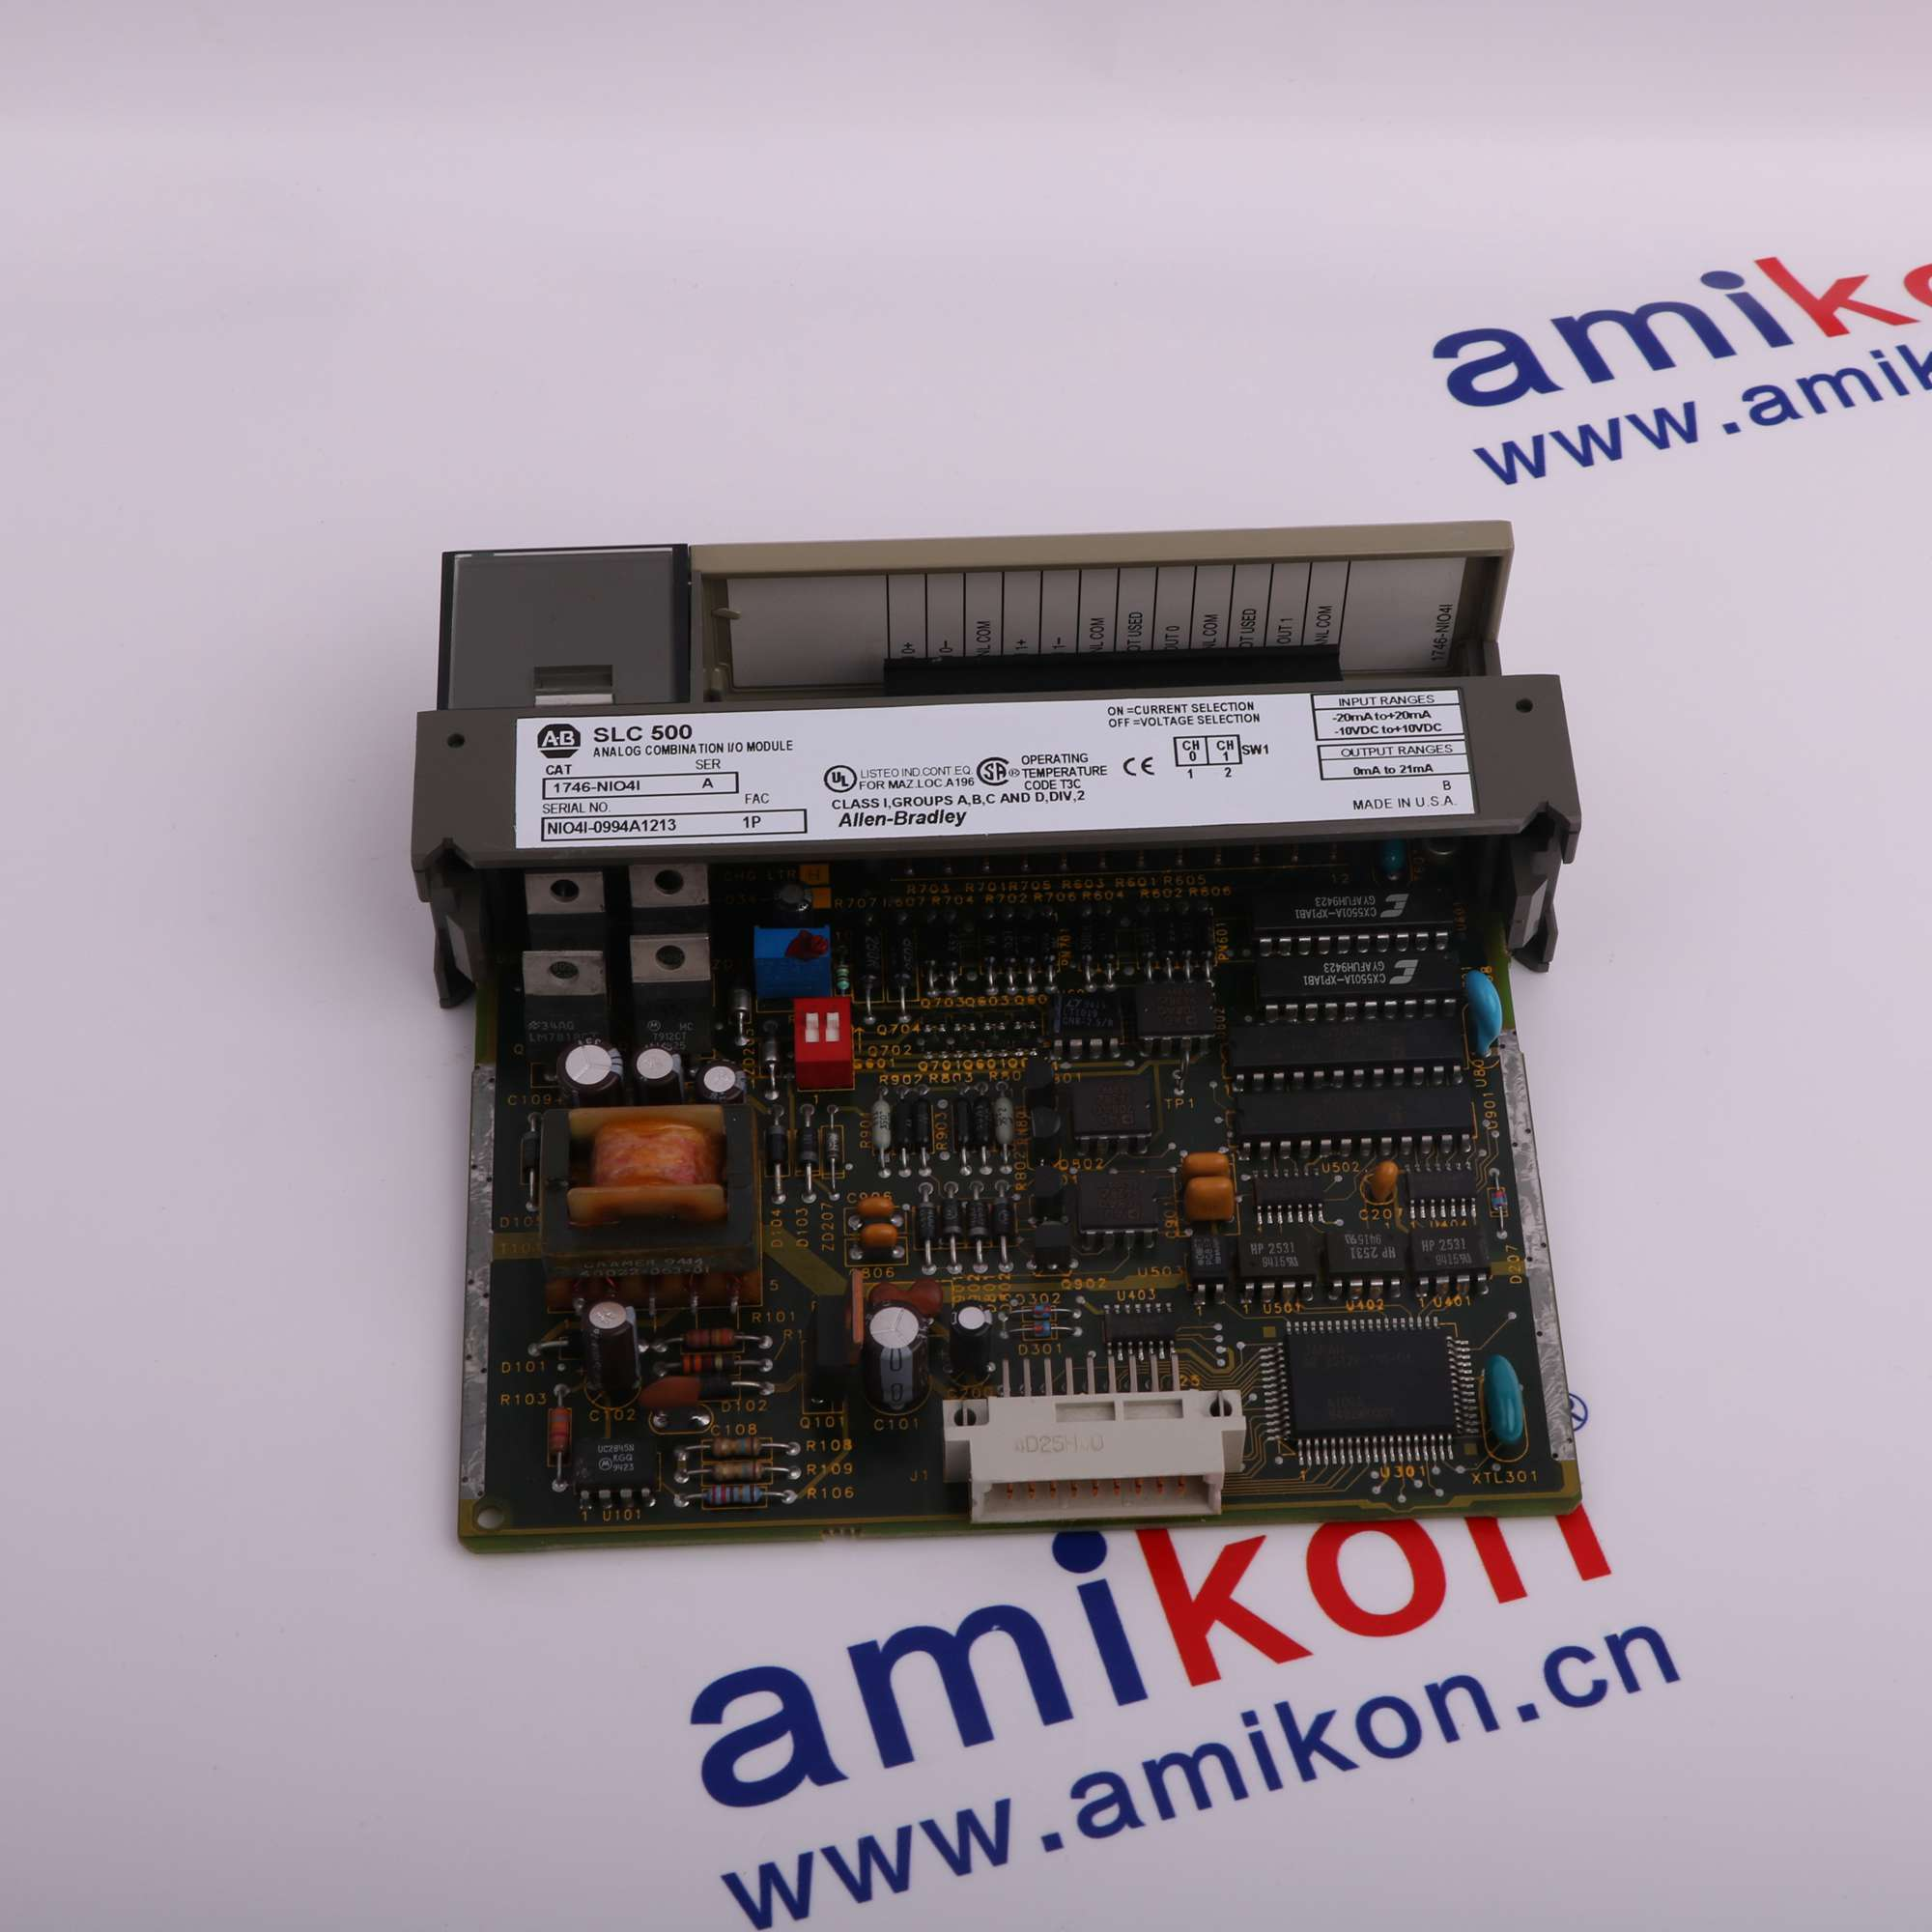 1 PC ICS Triplex T3120 NEW&ORIGINAL In stock